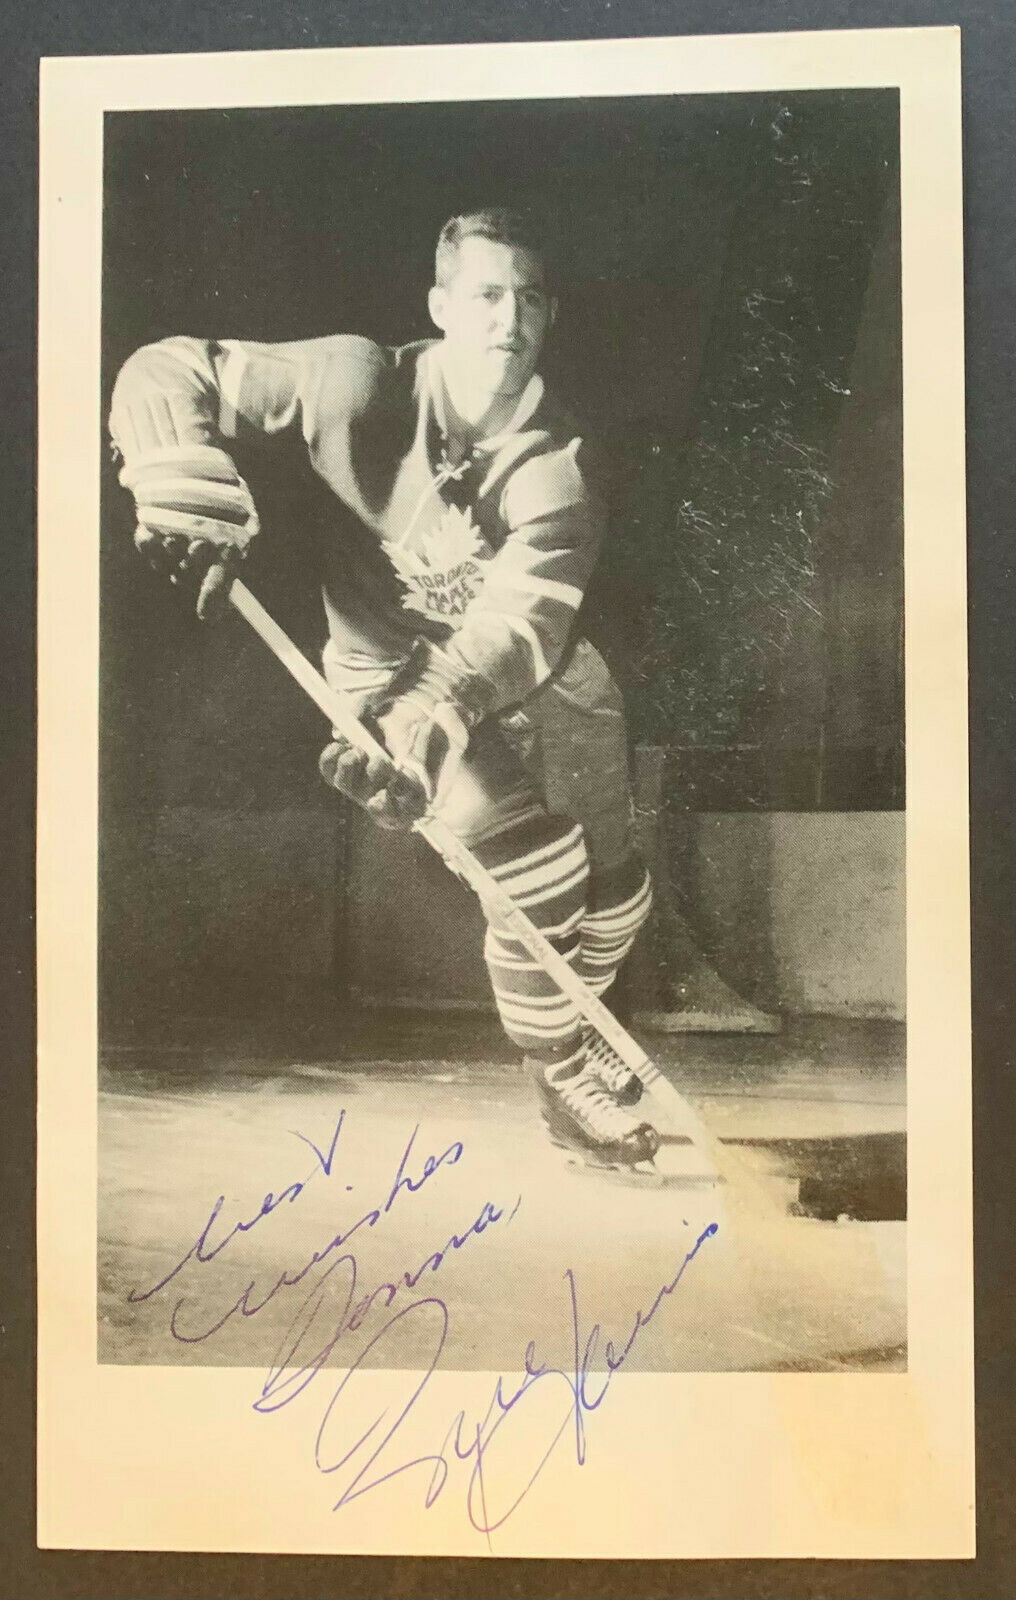 1961 NHL Hockey Billy Harris Toronto Maple Leaf Autographed Photo & Envelope